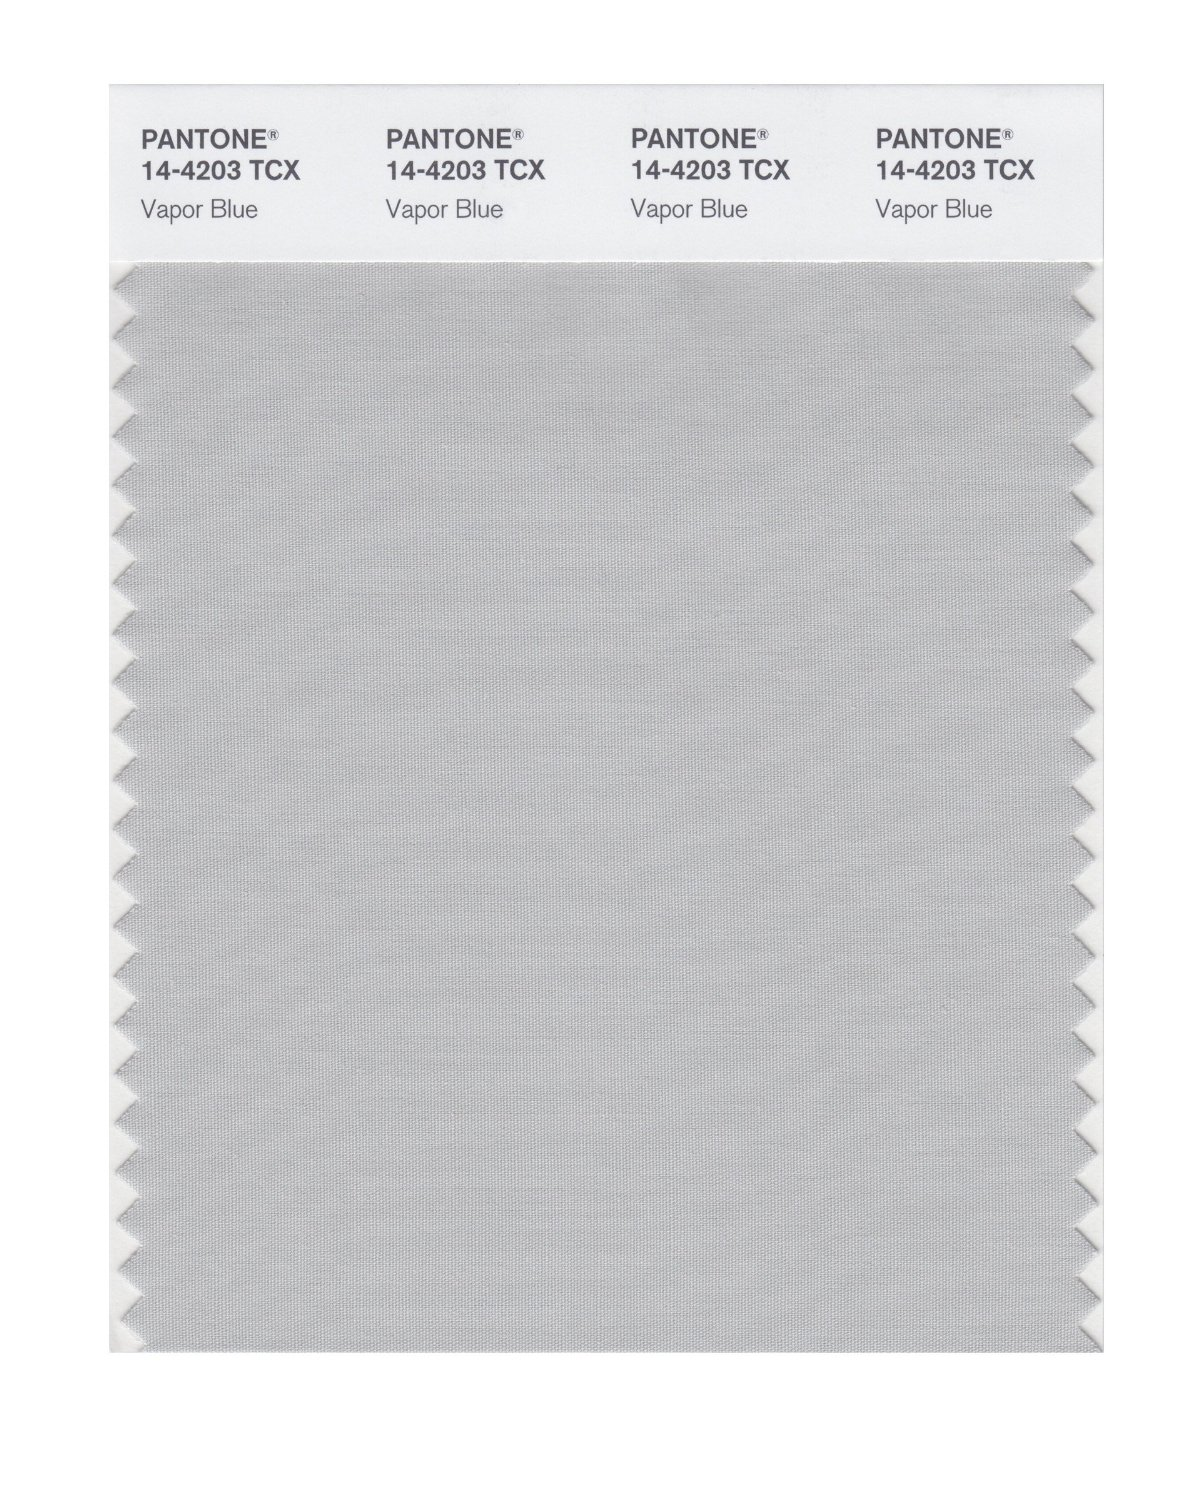 Pantone Smart Swatch 14-4203 Vapor Blue